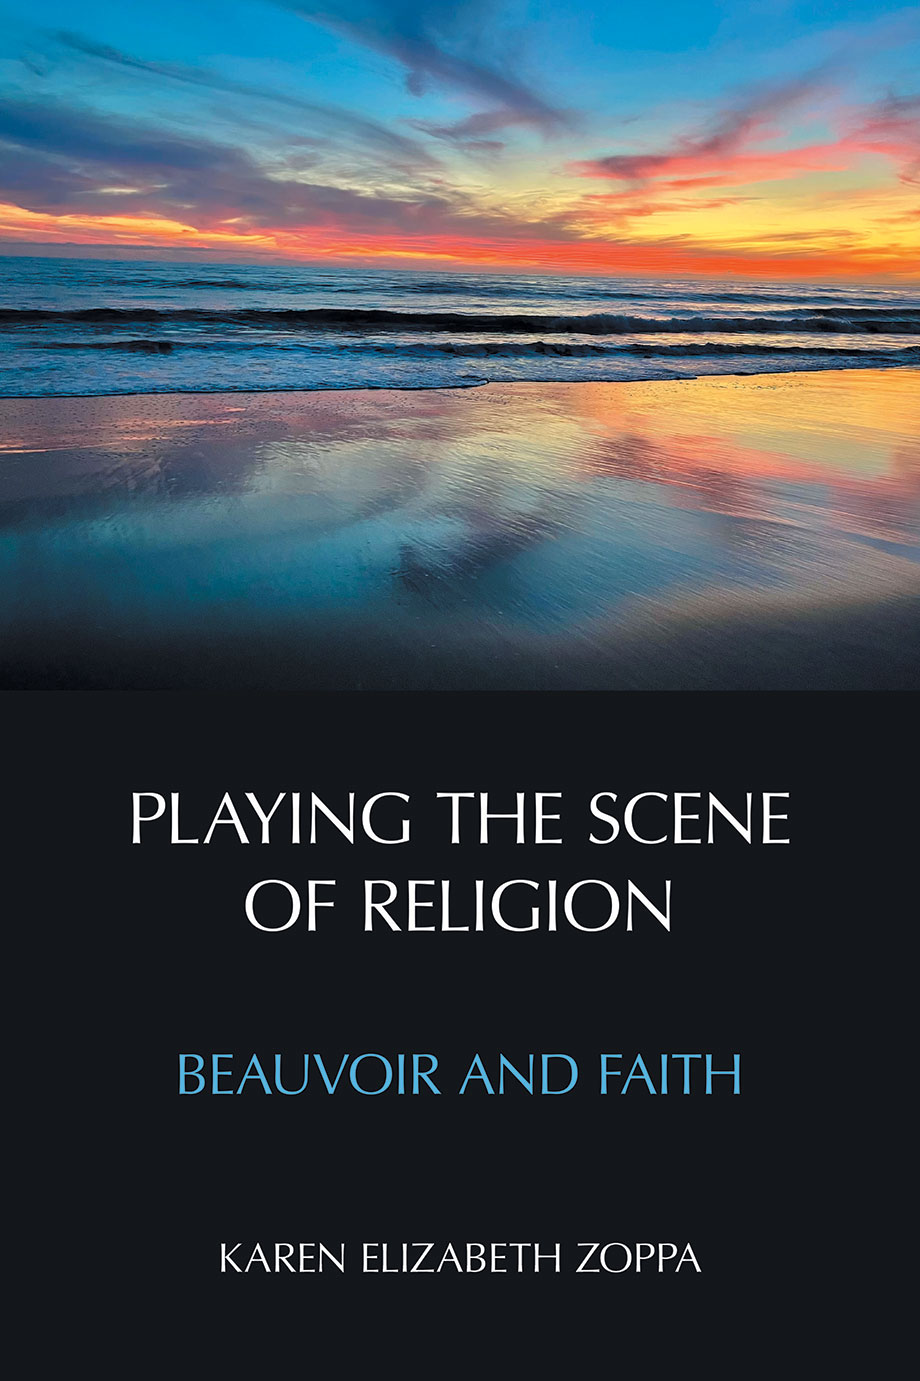 Playing the Scene of Religion